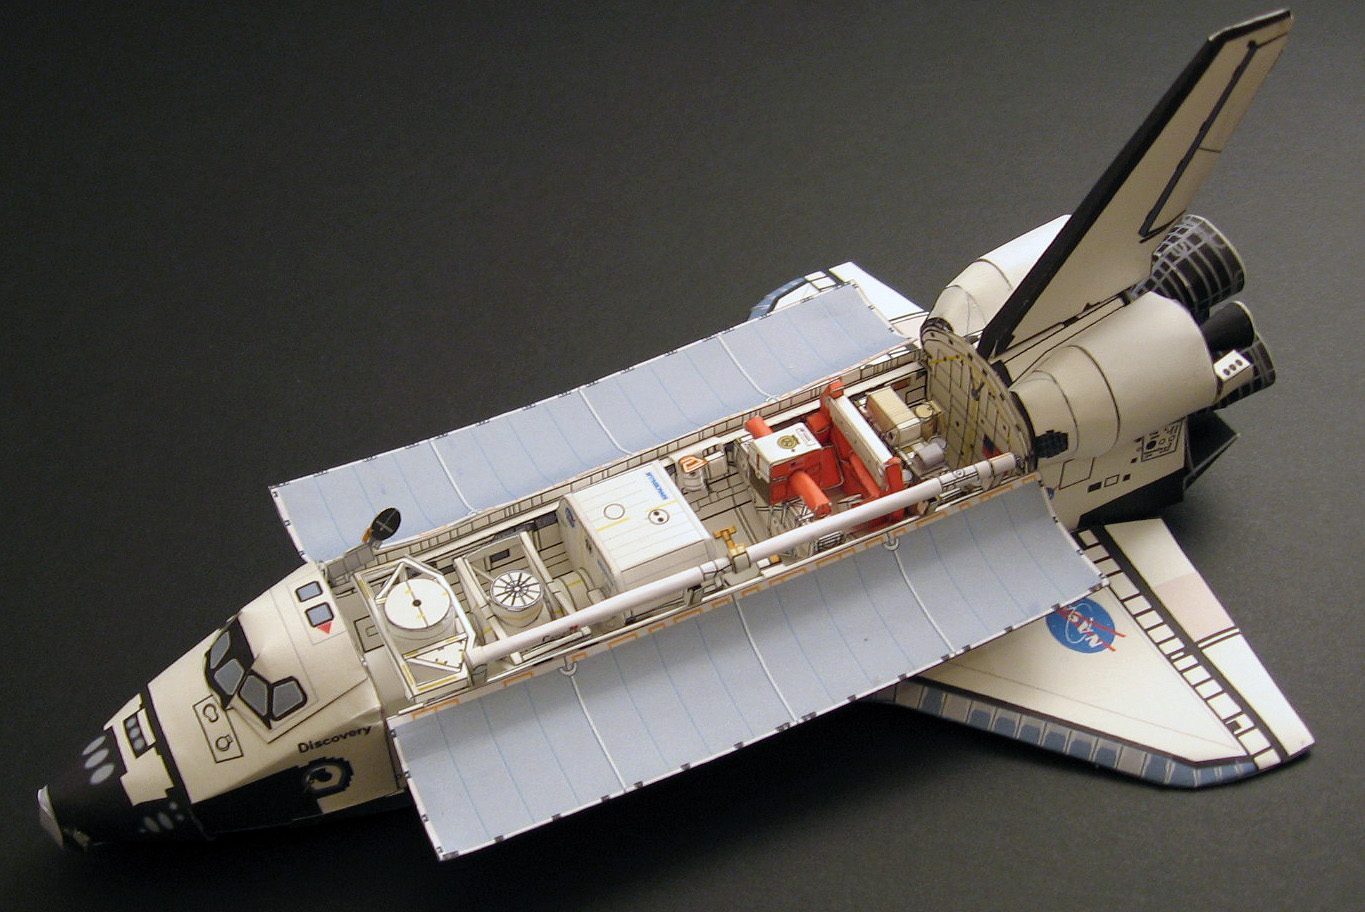 Space shuttle paper model pics about space - Small space shuttle model ...